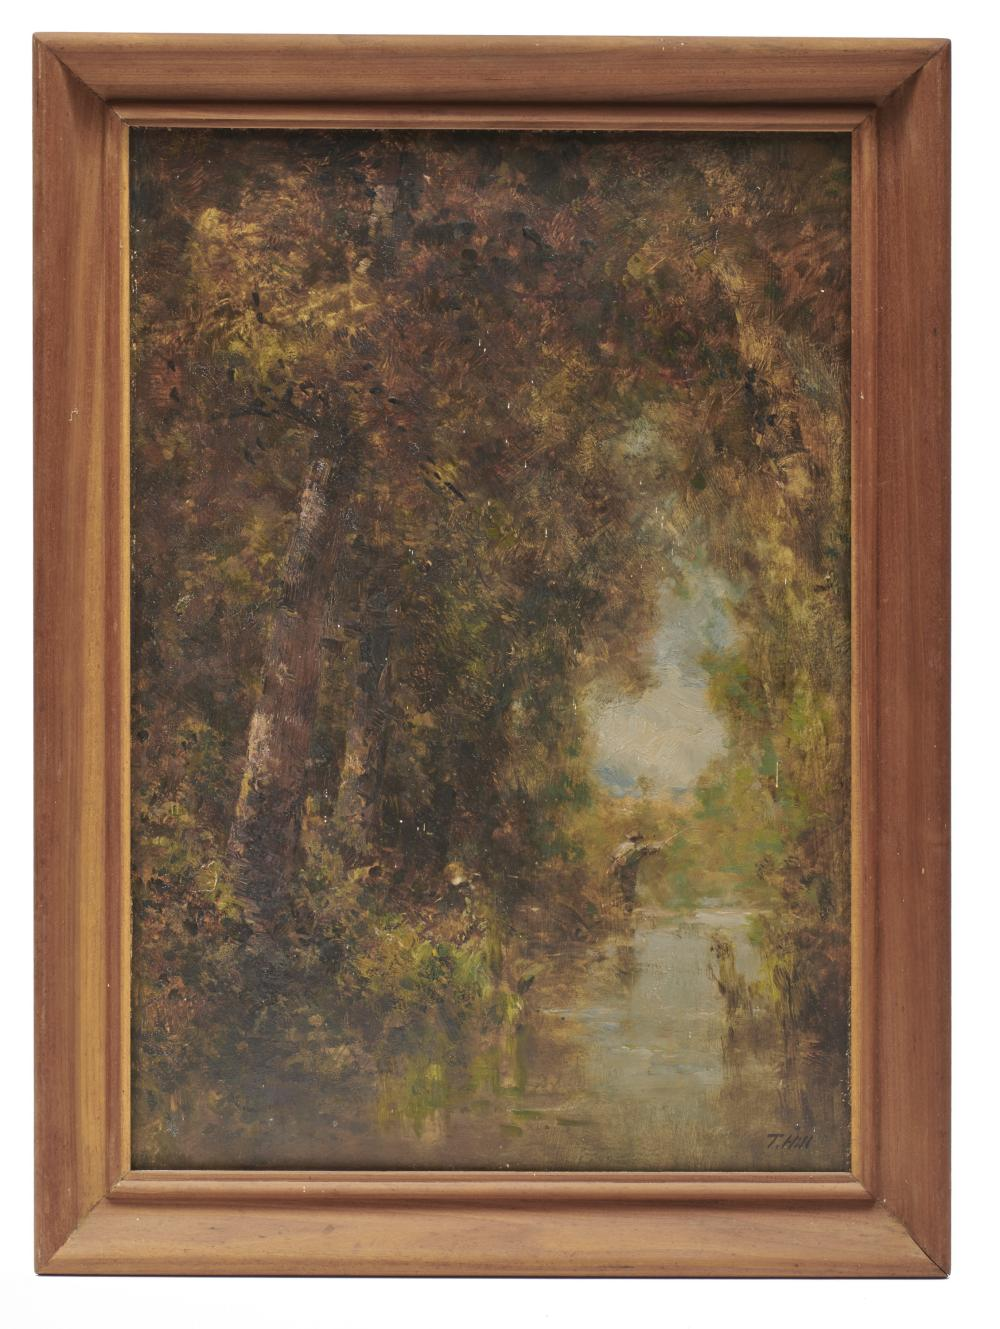 THOMAS HILL, (American, 1829-1908), Fly Fishing, oil on card, 20 x 14 in., frame: 23 1/2 x 17 in.